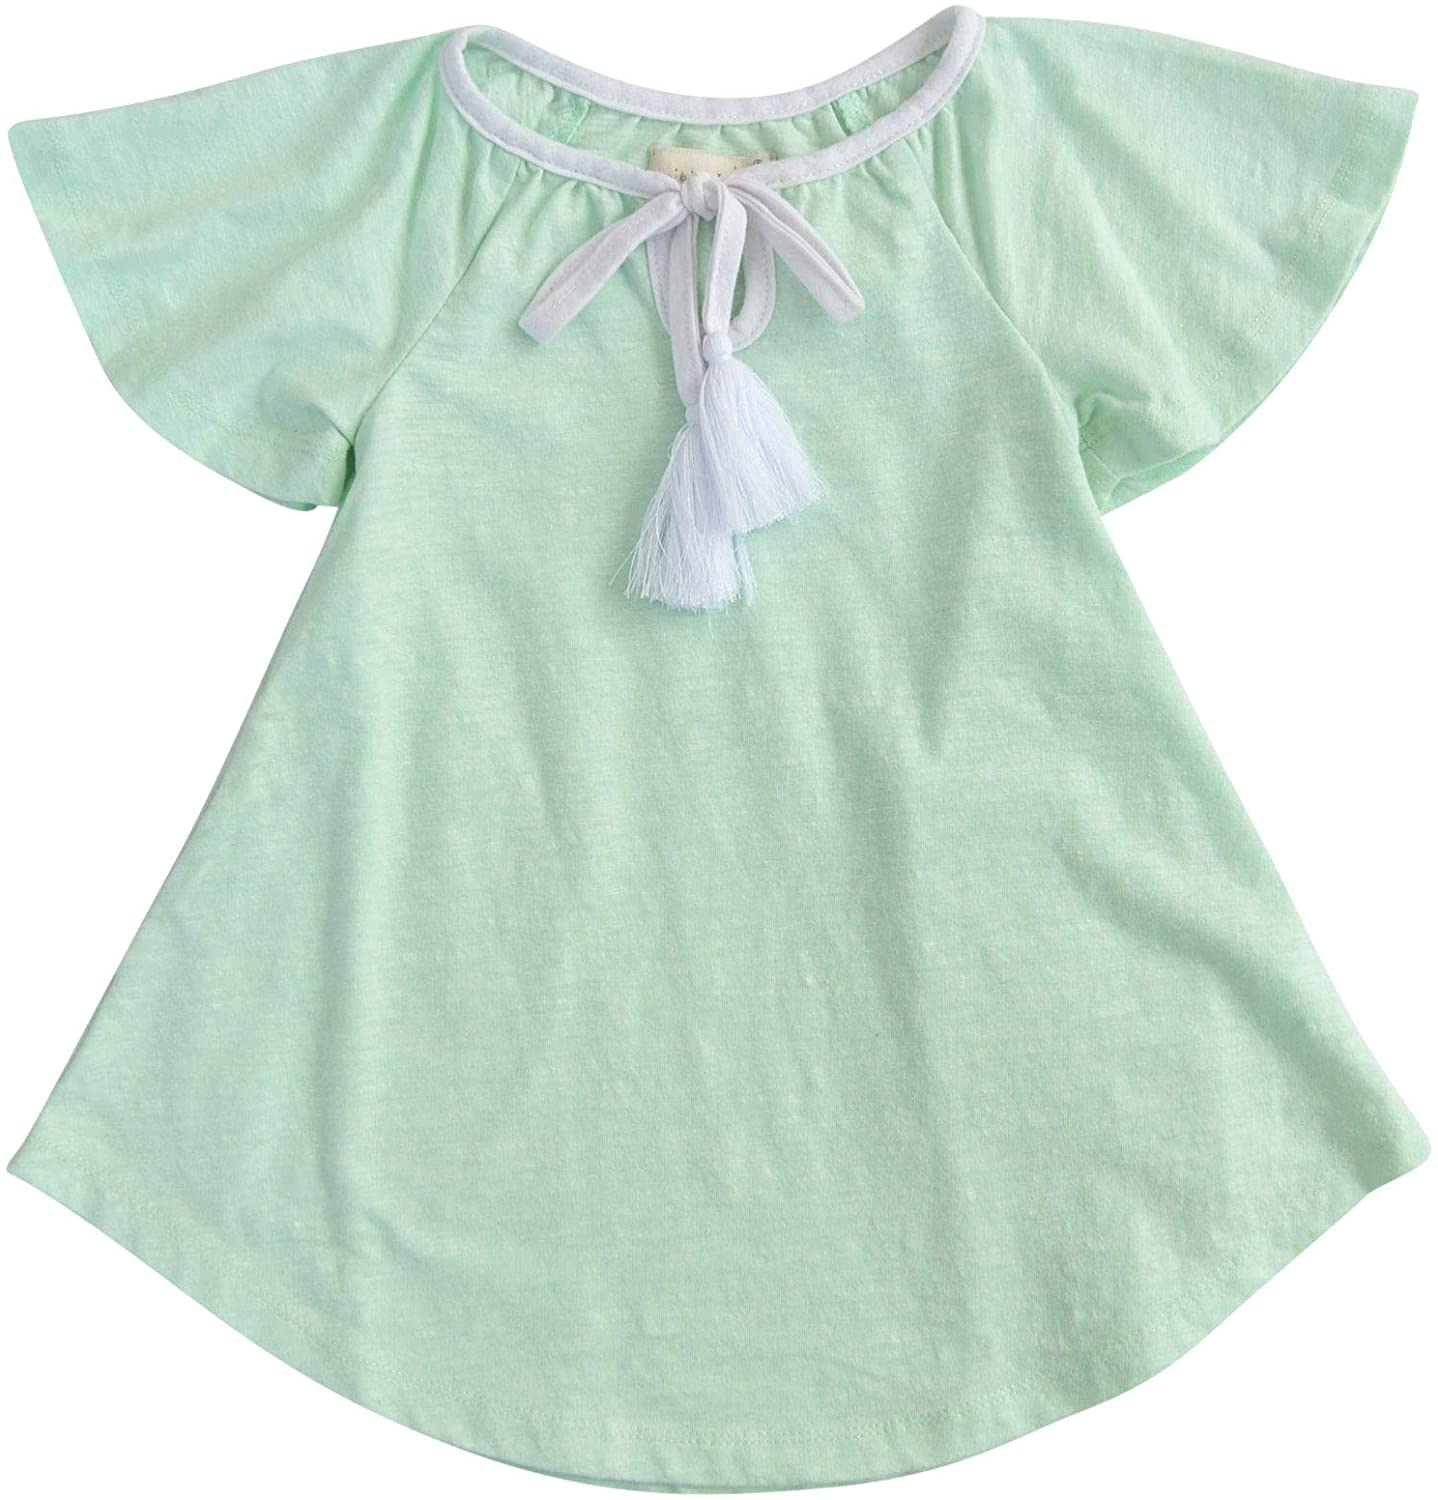 MikiMiette Little Girls Dress with Tassle Detail and Flutter Sleeves 65% Cotton 35% Polyester